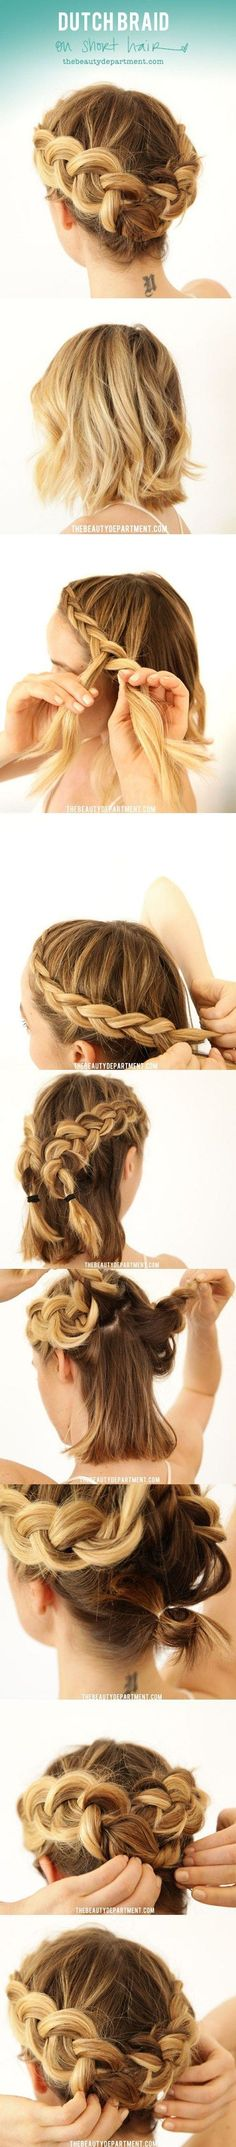 Crown Braid For Bob Length Hair Tutorial More